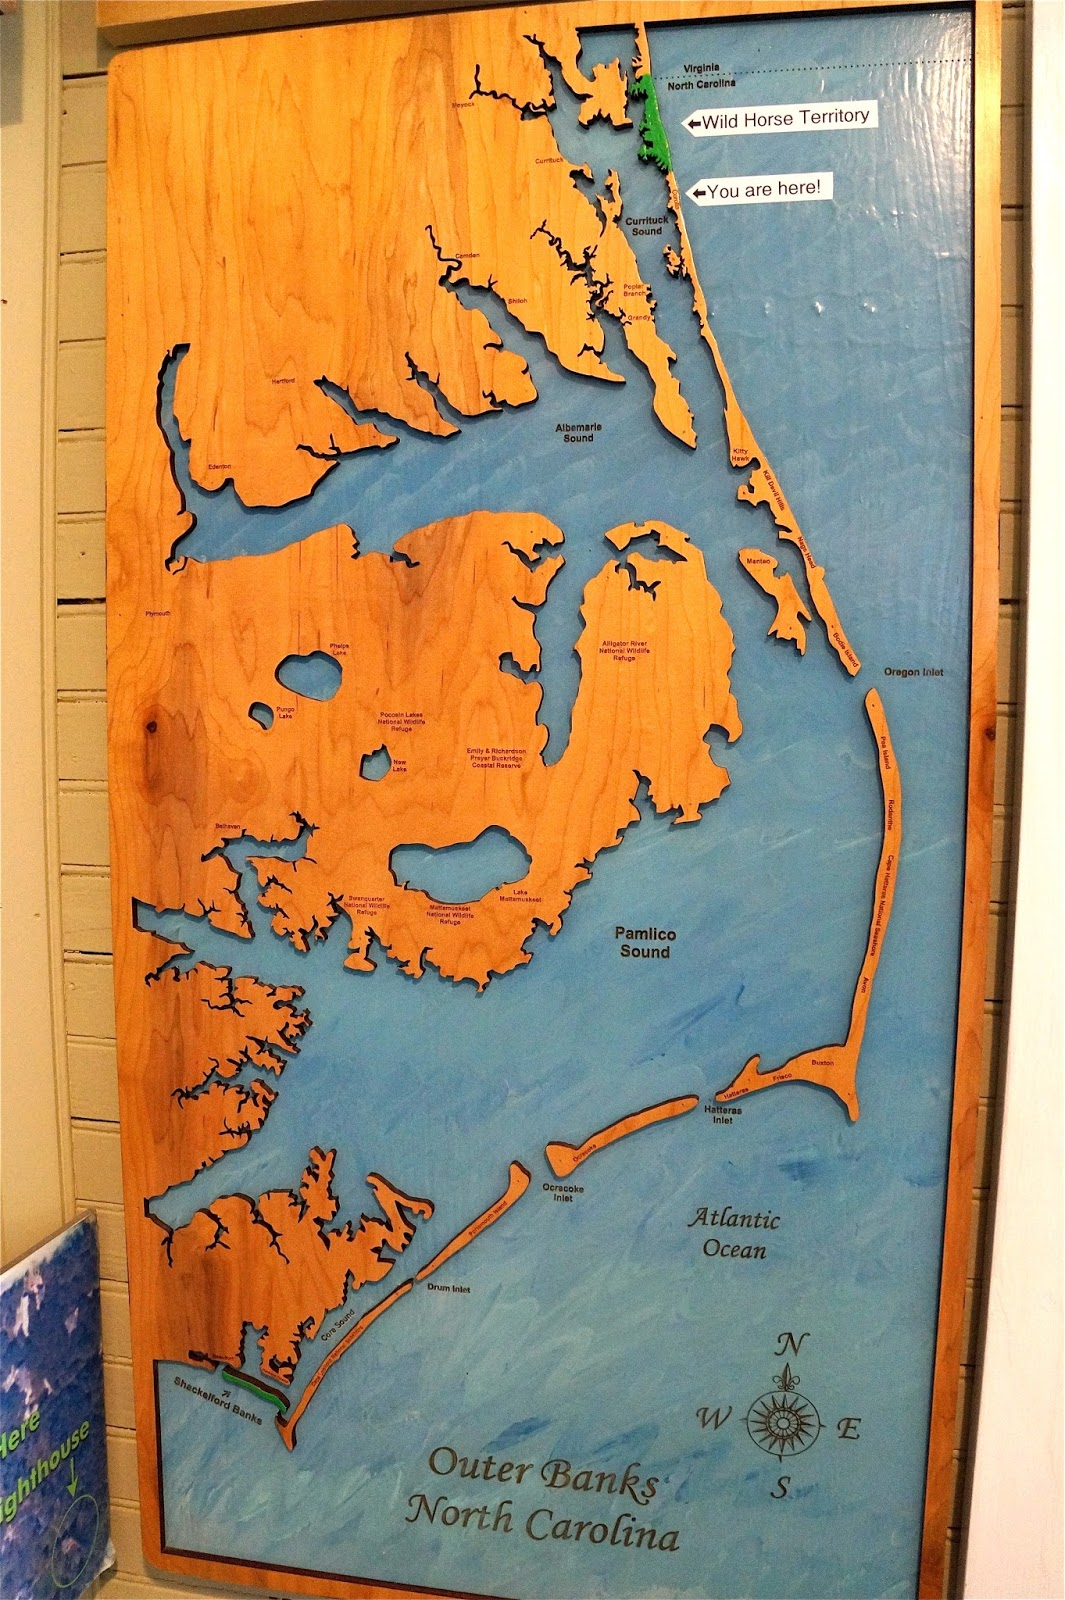 the outer banks did not mean anything to us until we carefully looked at a map and saw the long thin broken strip of islands sheltering the mainland of